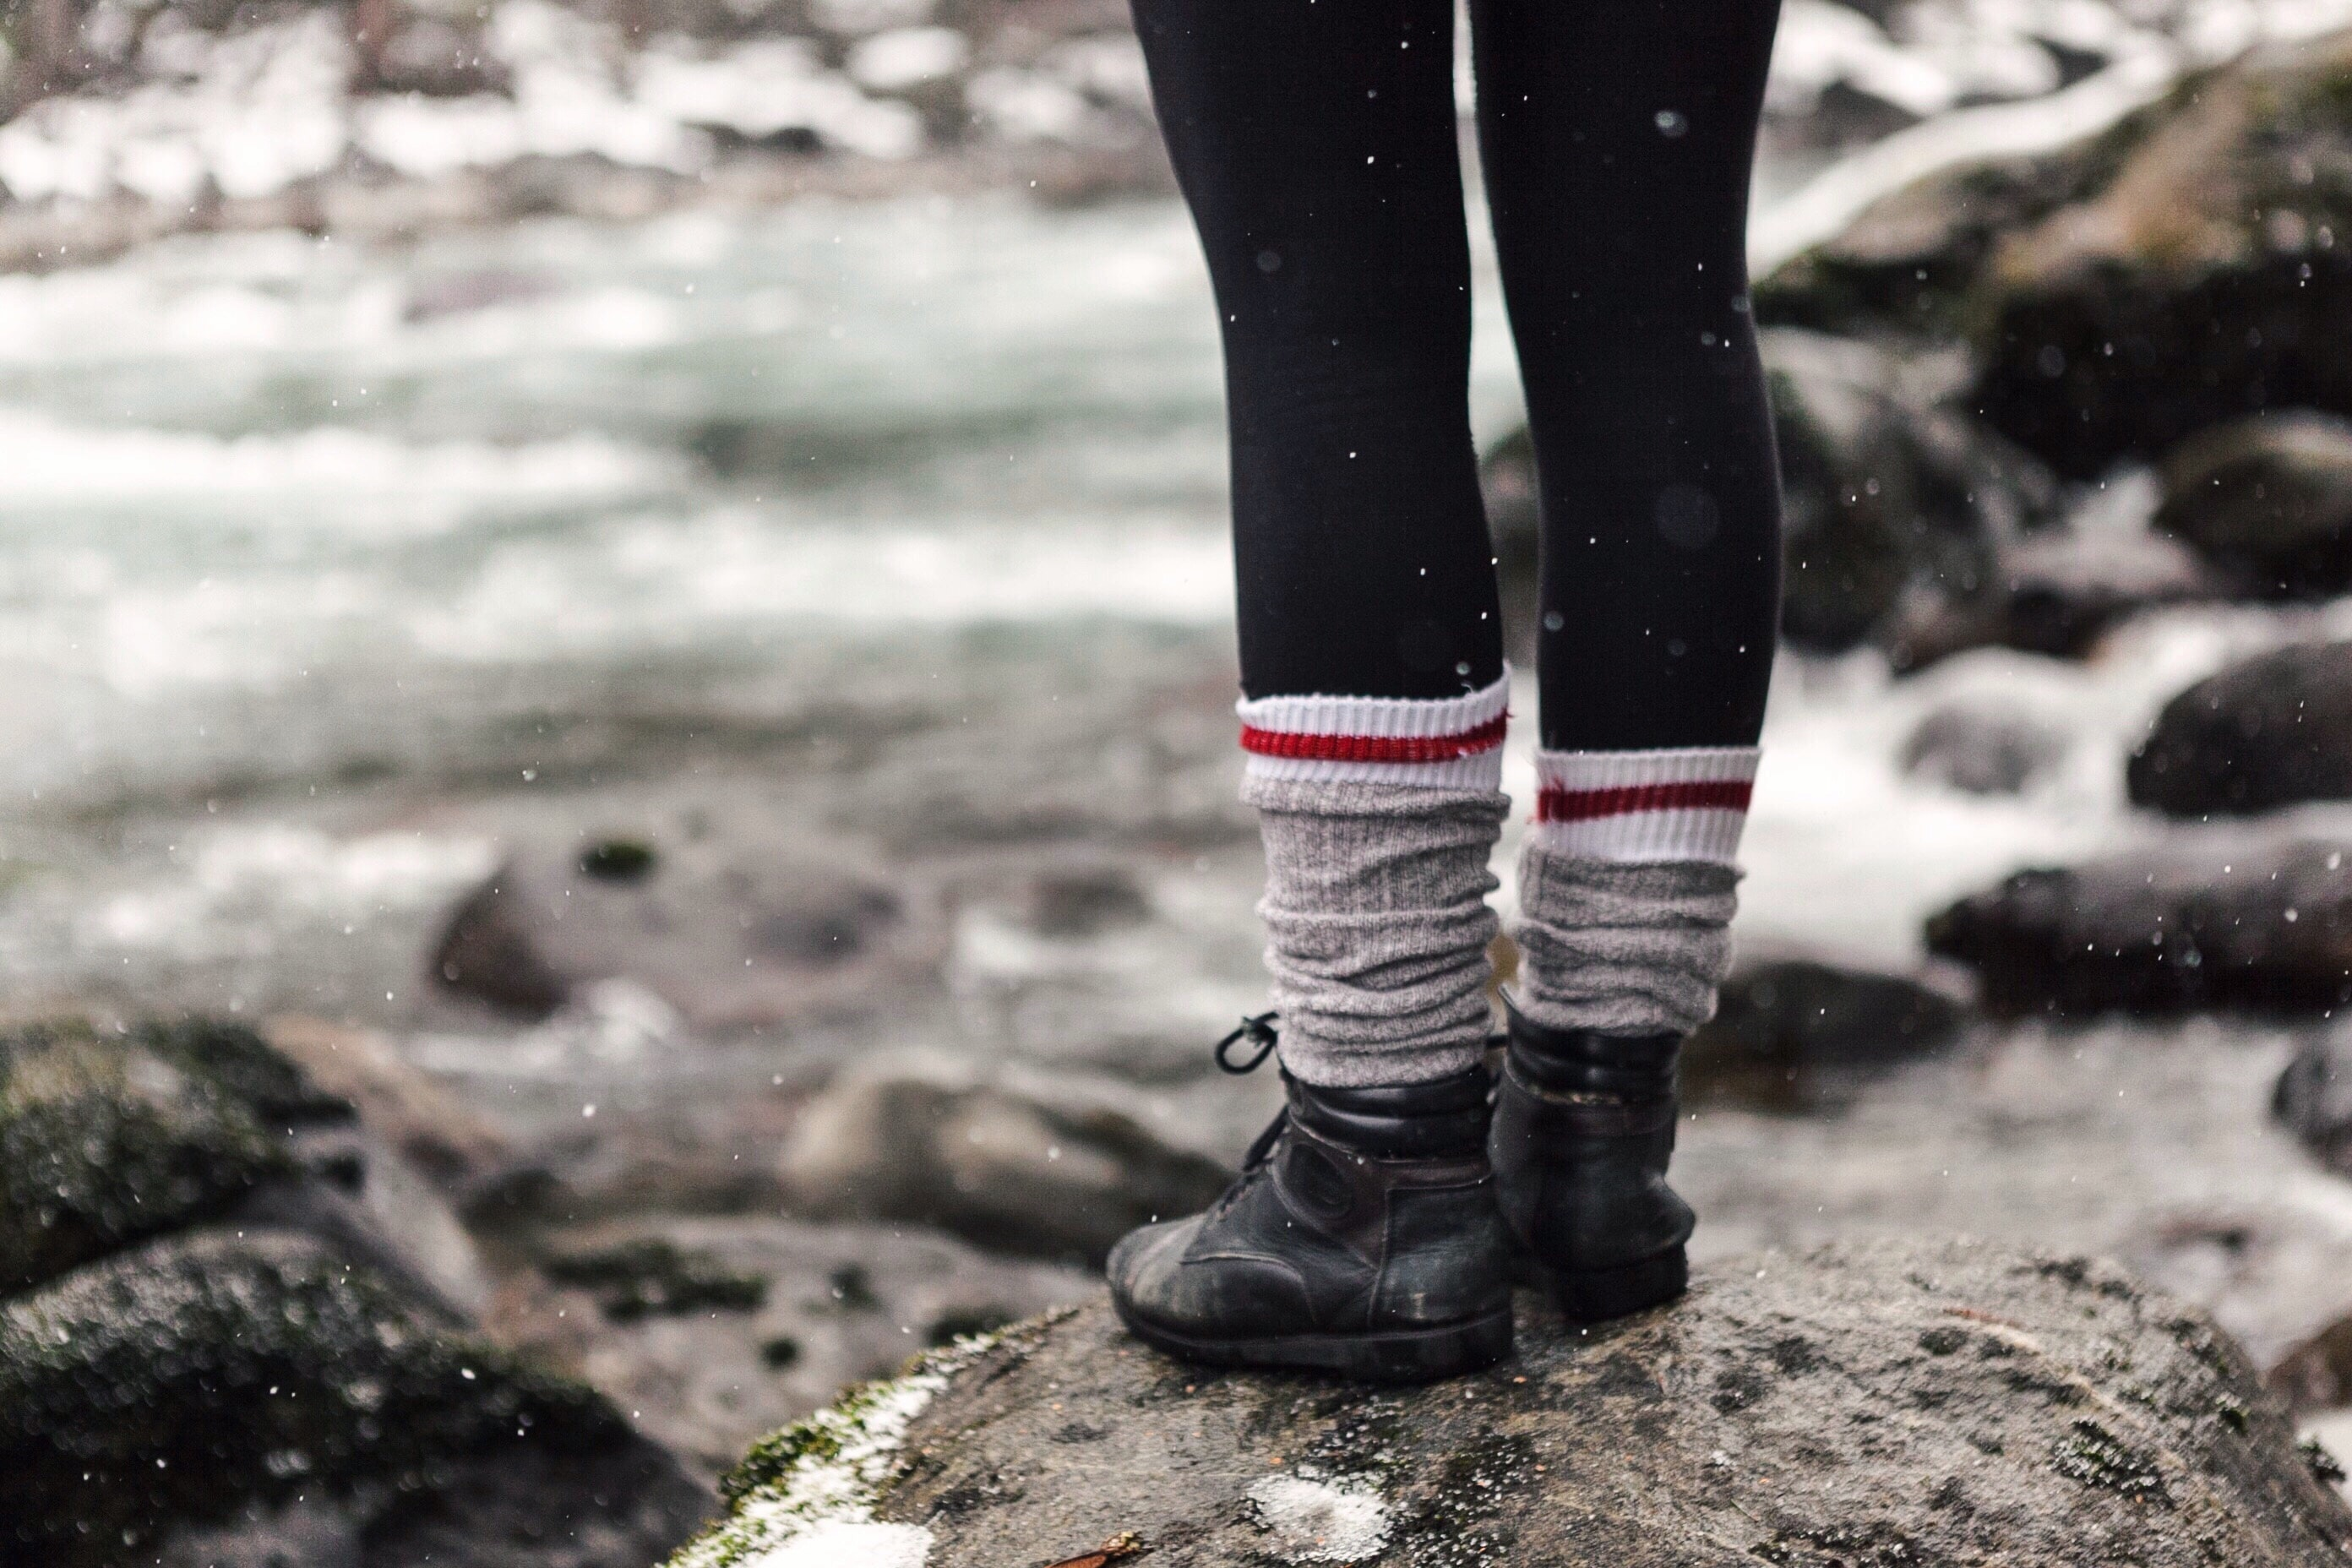 A person with leggings, black boots, and bunched socks stands on a rock during a light snow; only the person's legs are in frame